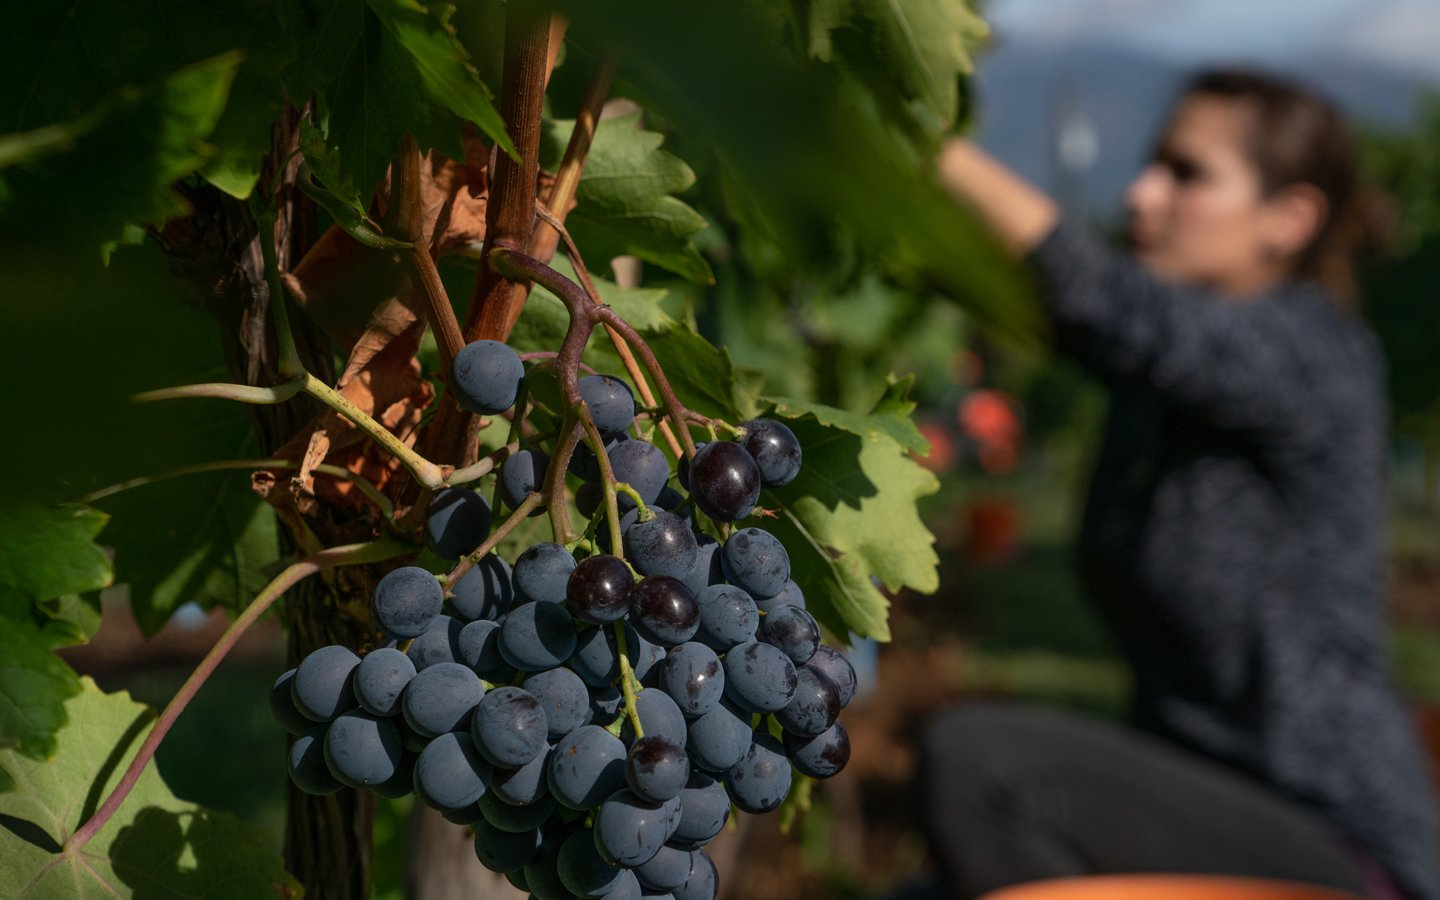 http://spatulamedia.ca/wp-content/uploads/2019/05/picking-grapes-at-Indigenous-World-Winery.jpg